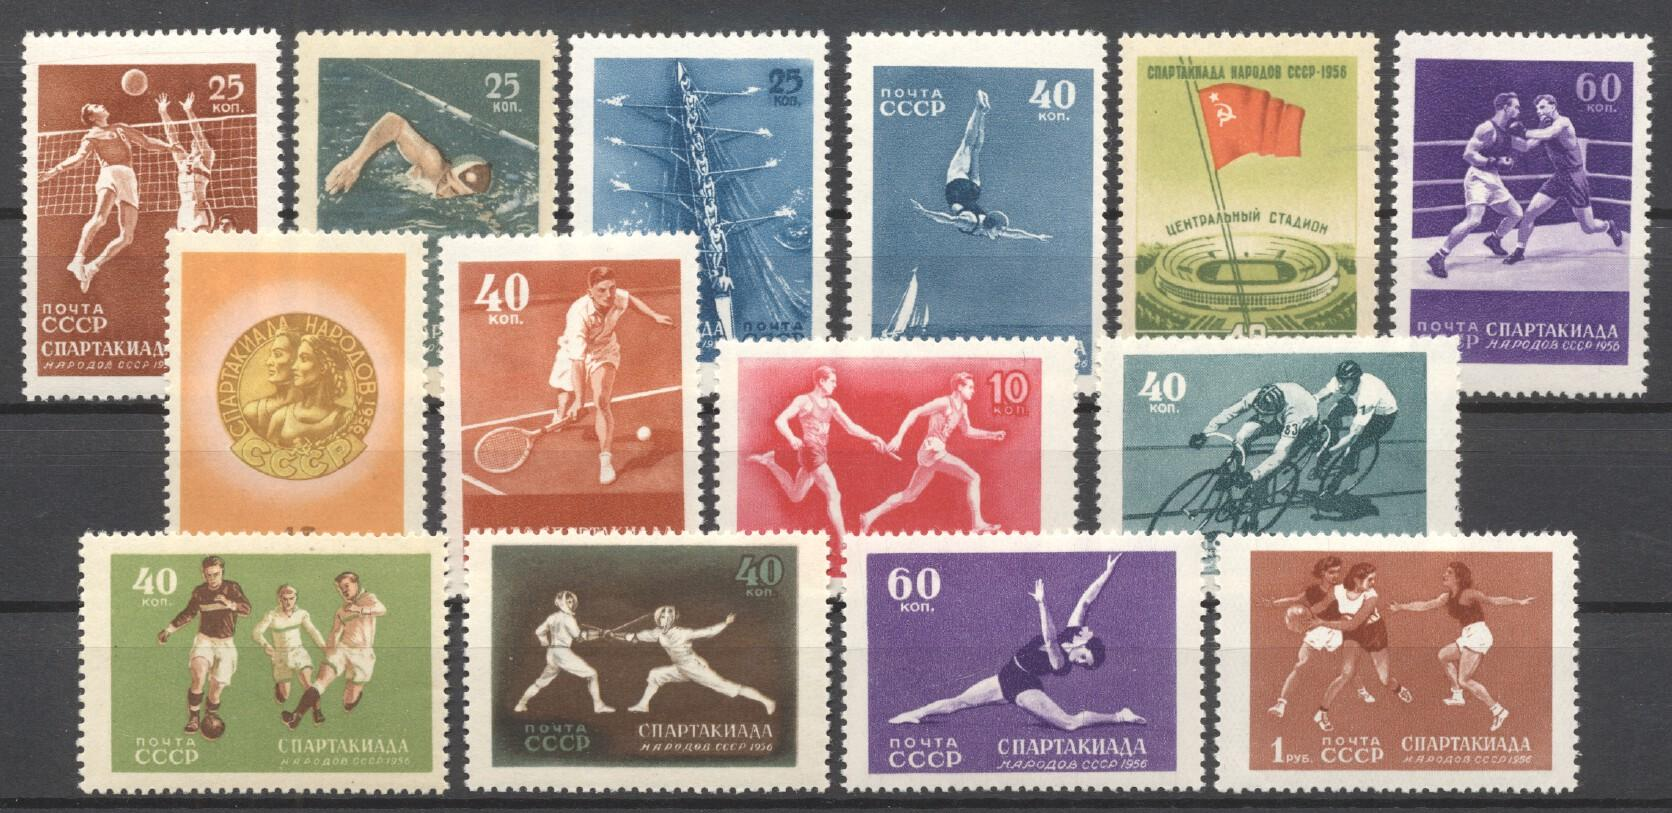 Stamps with Sports, Olympic Games, Tennis from Russia (image for product #265696)